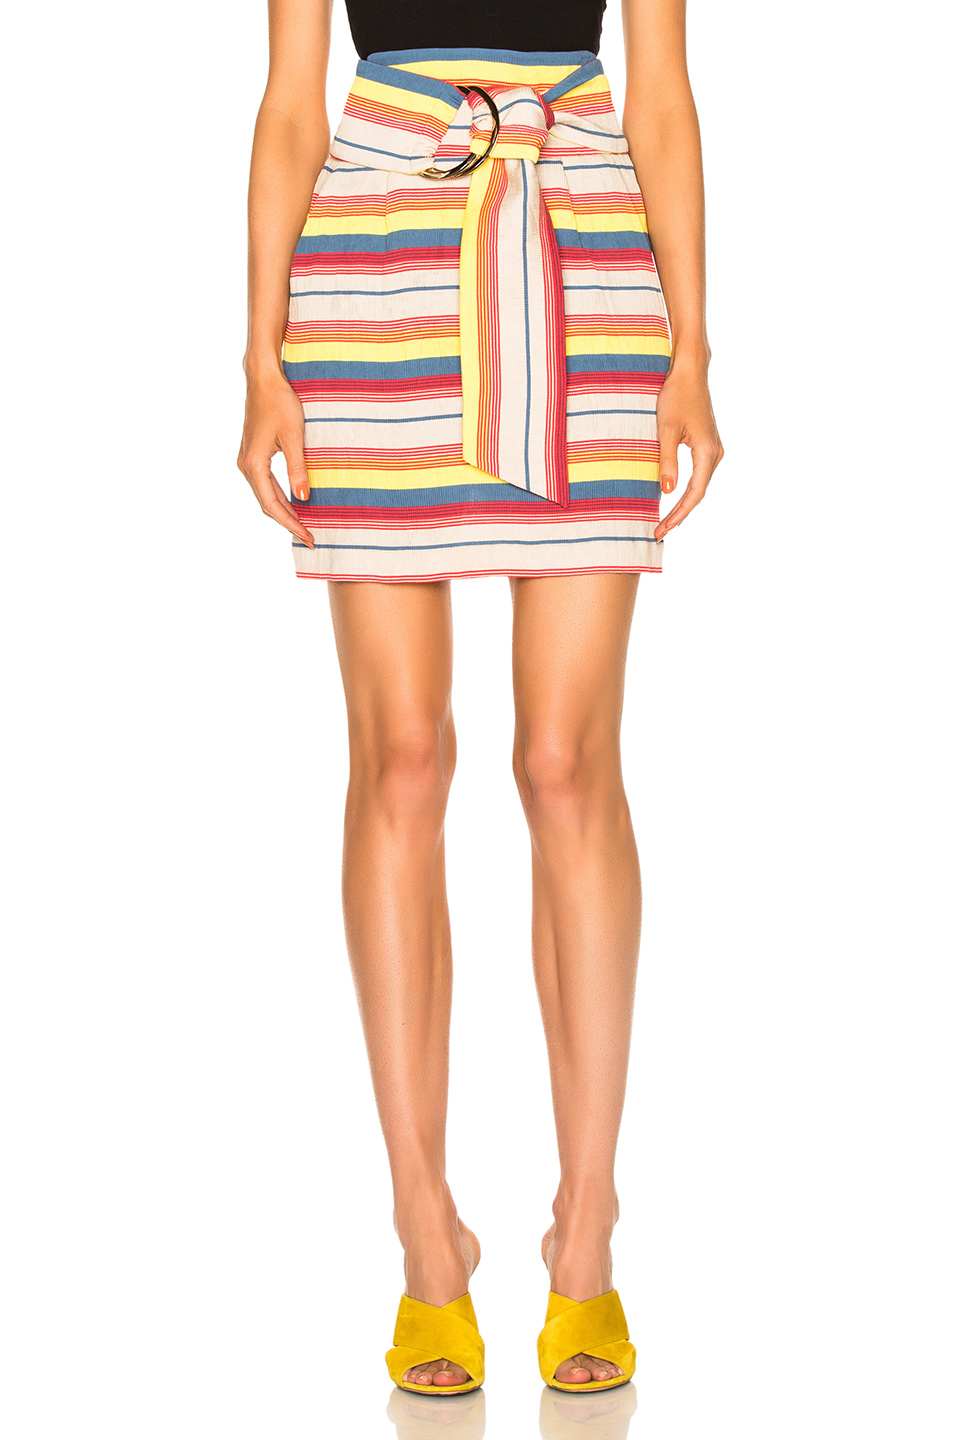 Kate Sylvester Julia Skirt in Stripes,Yellow,Neutrals